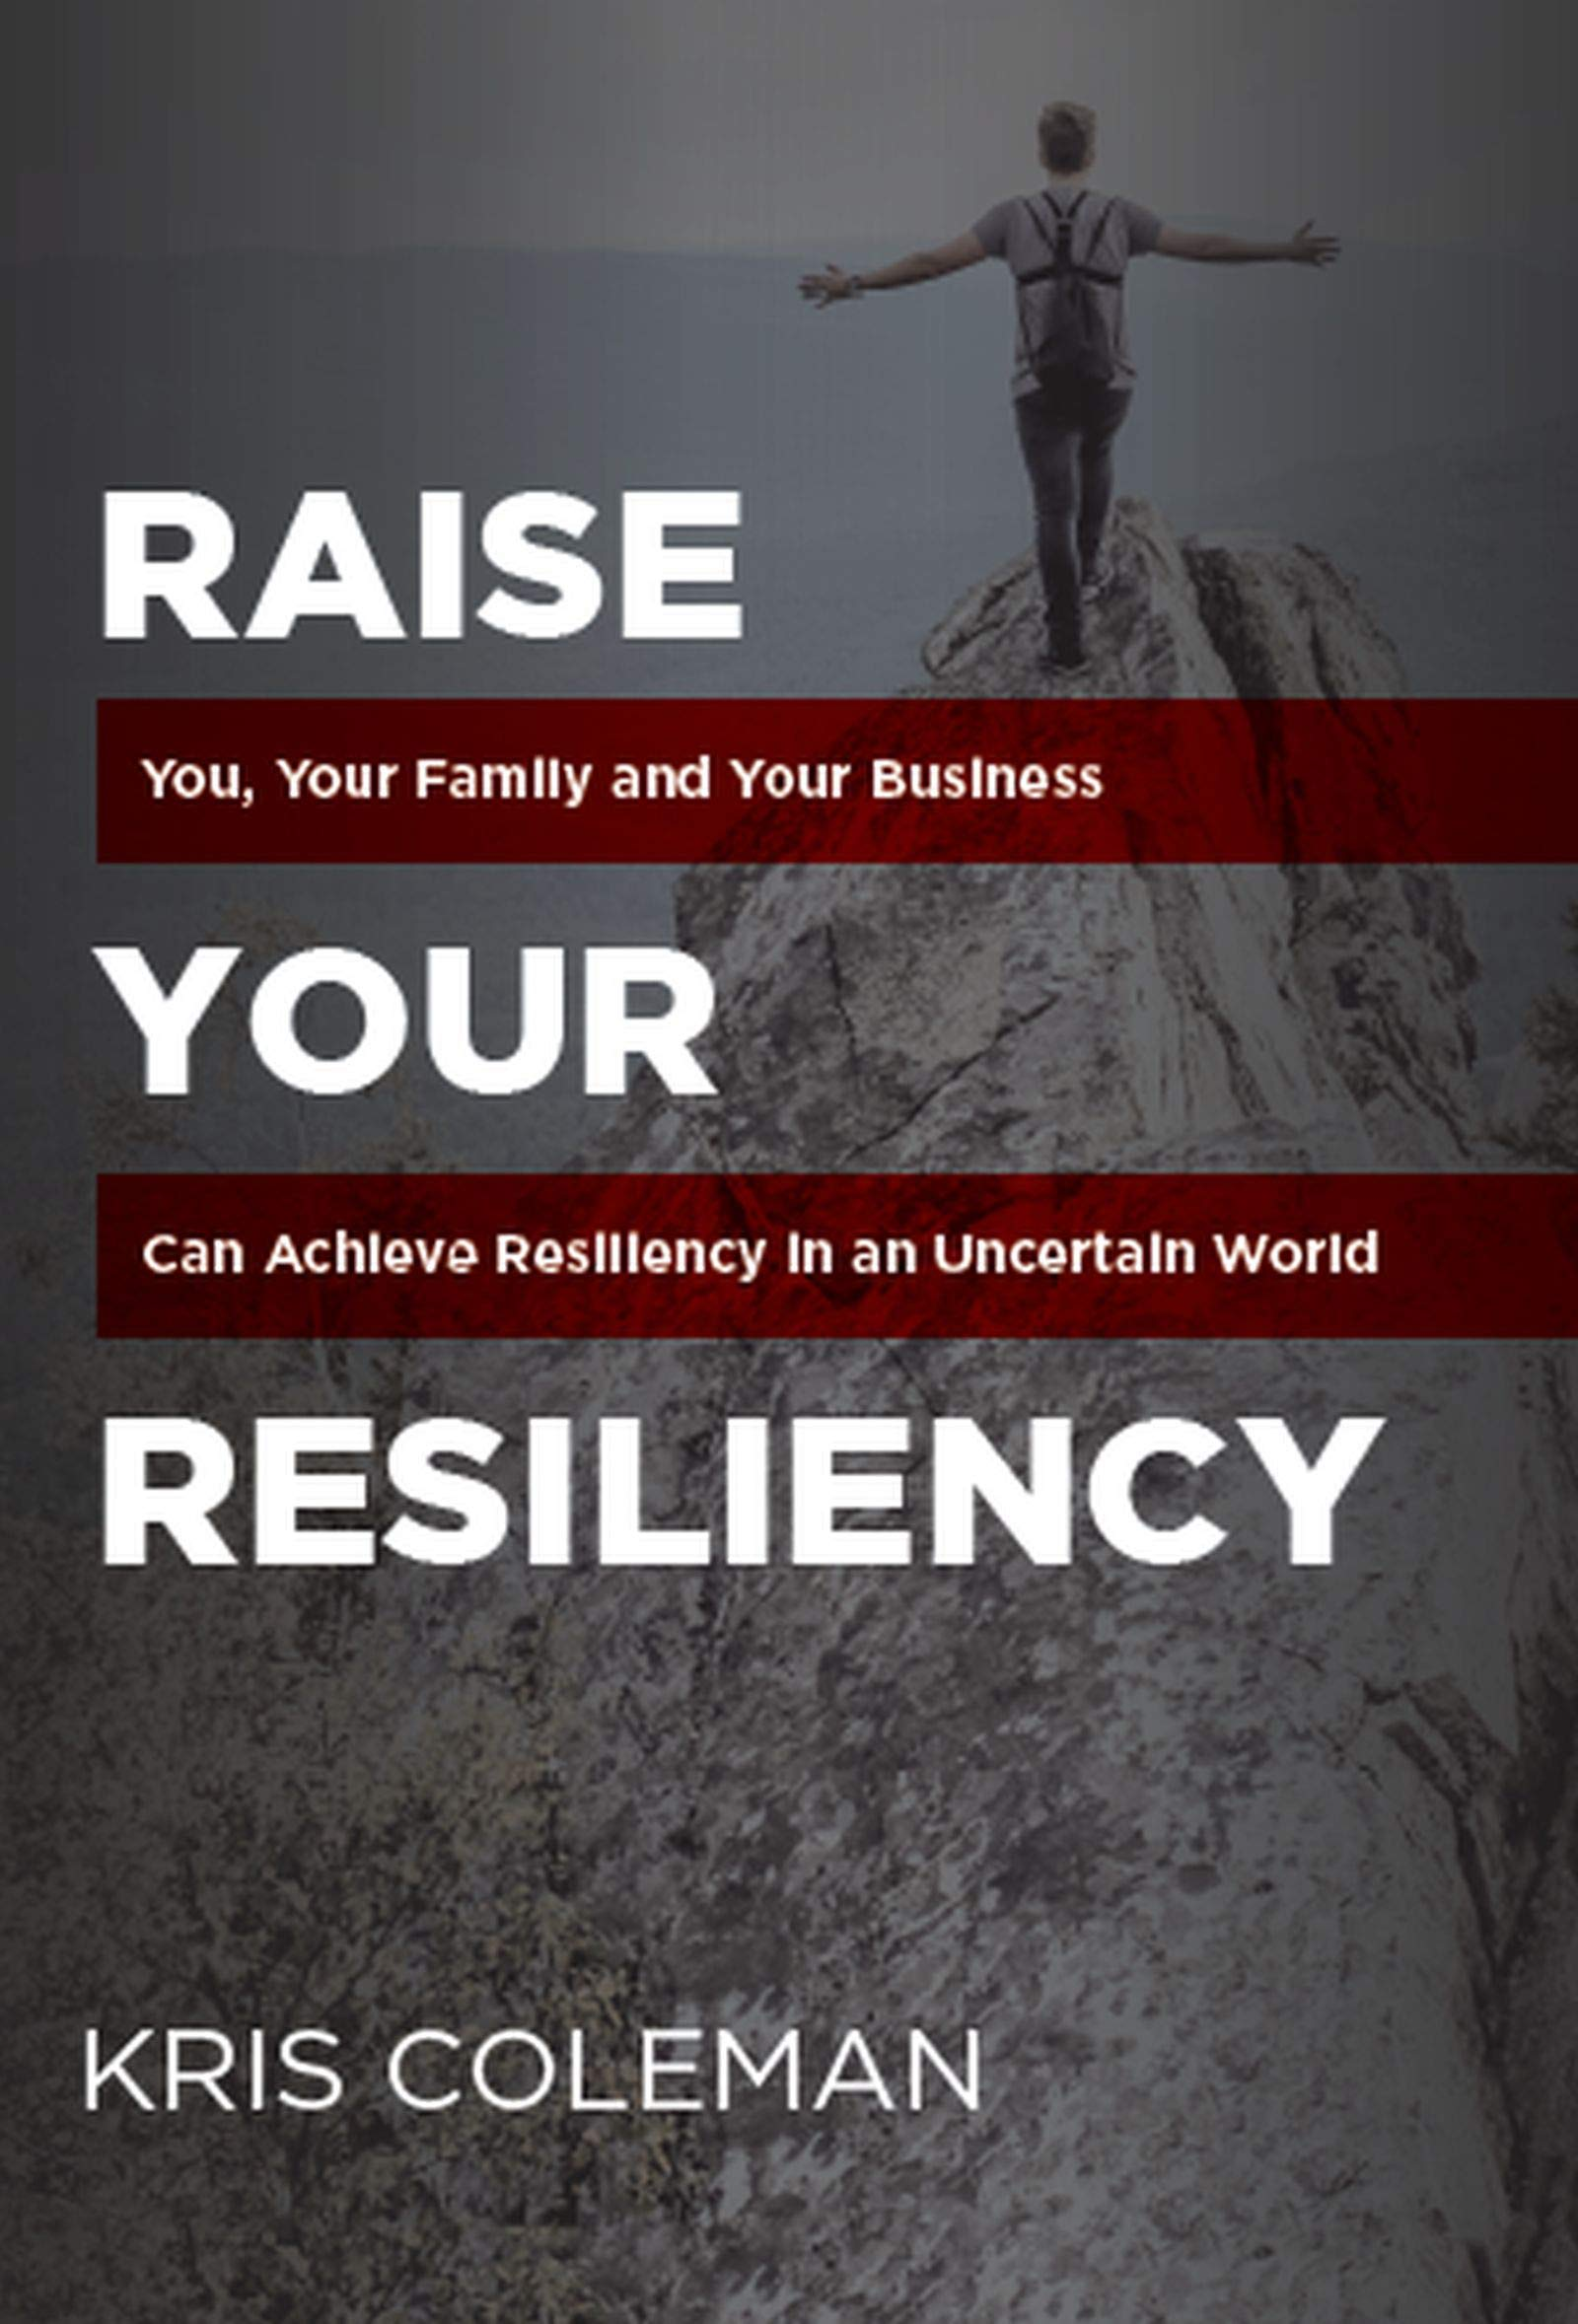 Raise Your Resiliency: You, Your Family and Your Business Can Achieve Resiliency in an Uncertain World?